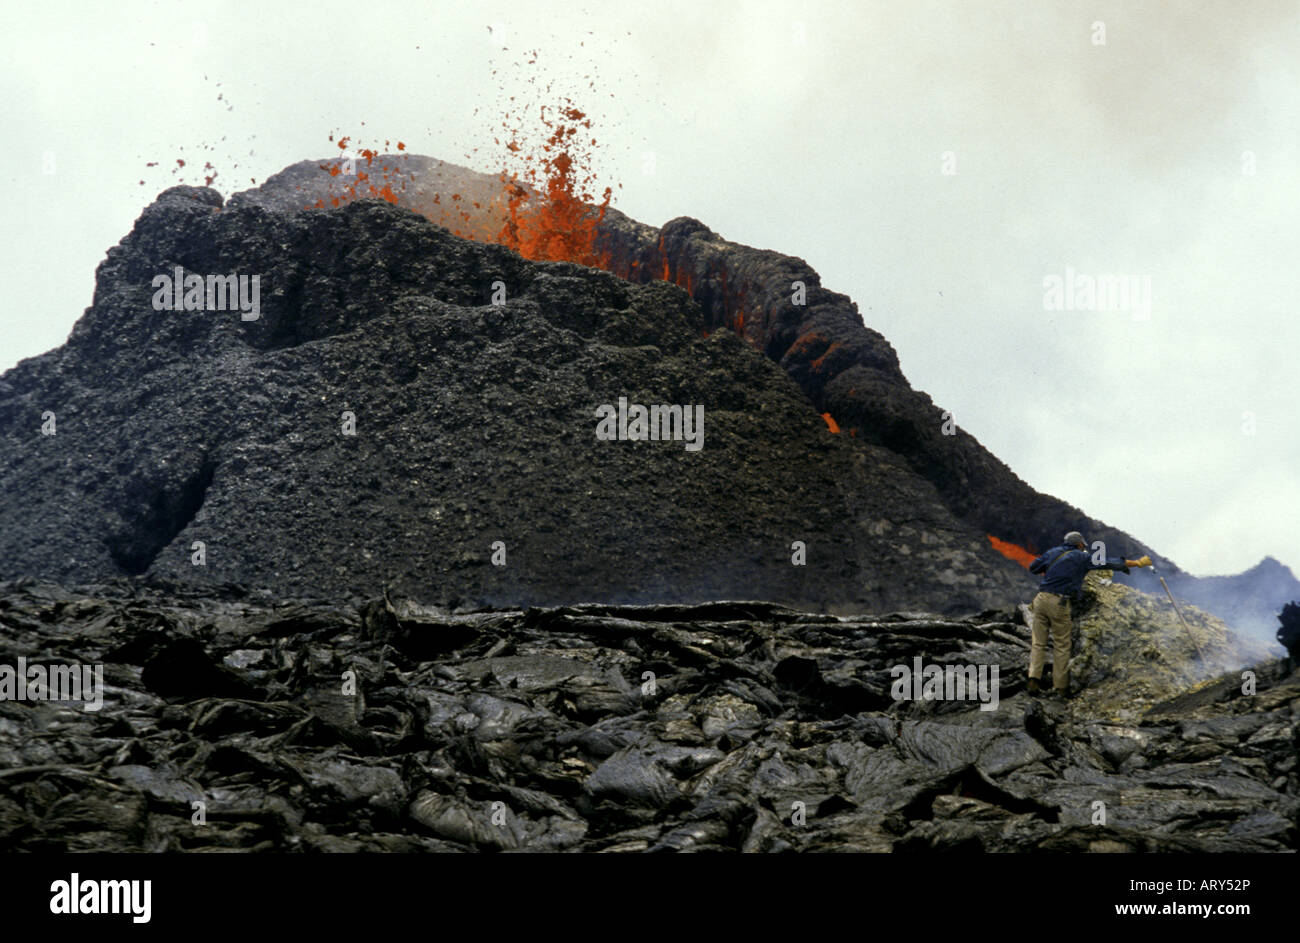 Fountaining eruption from Kilauea's first eruption in 1983 at puu oo vent, Hawaii volcanoes national park, Big - Stock Image